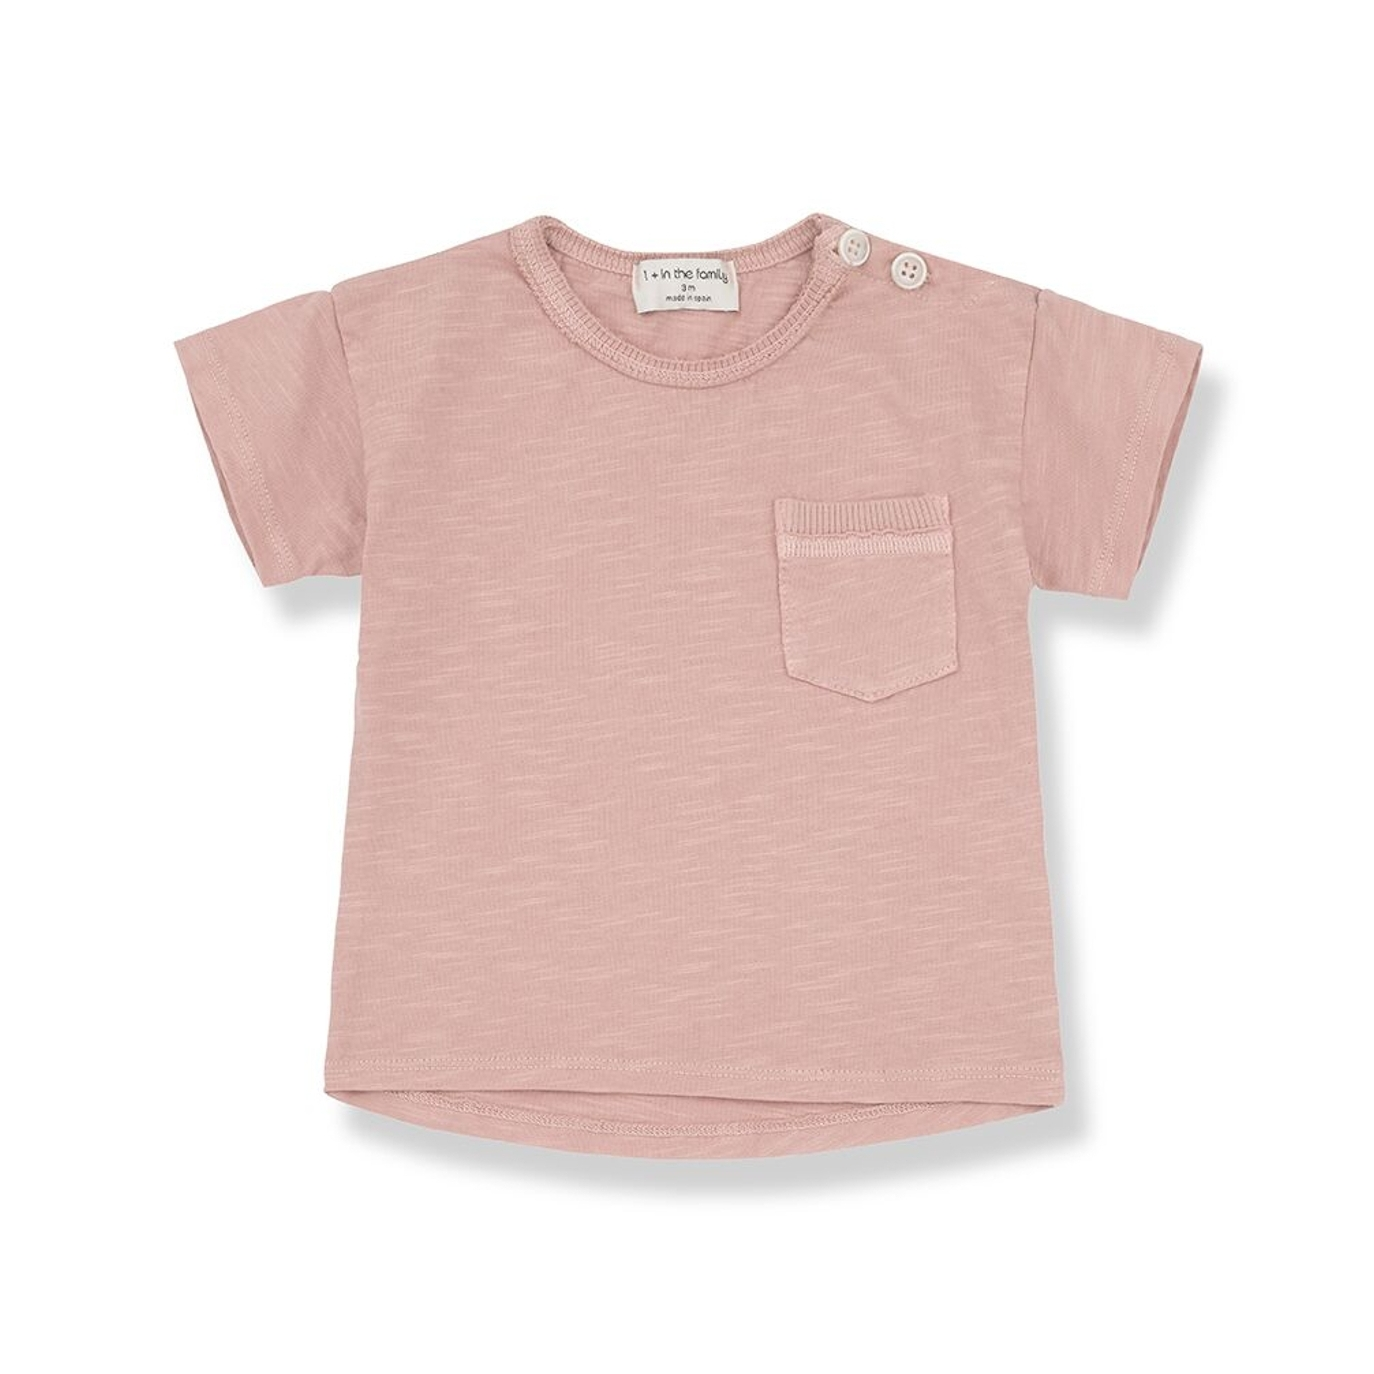 1 + in the family - Vicco T-shirt Pink - 1